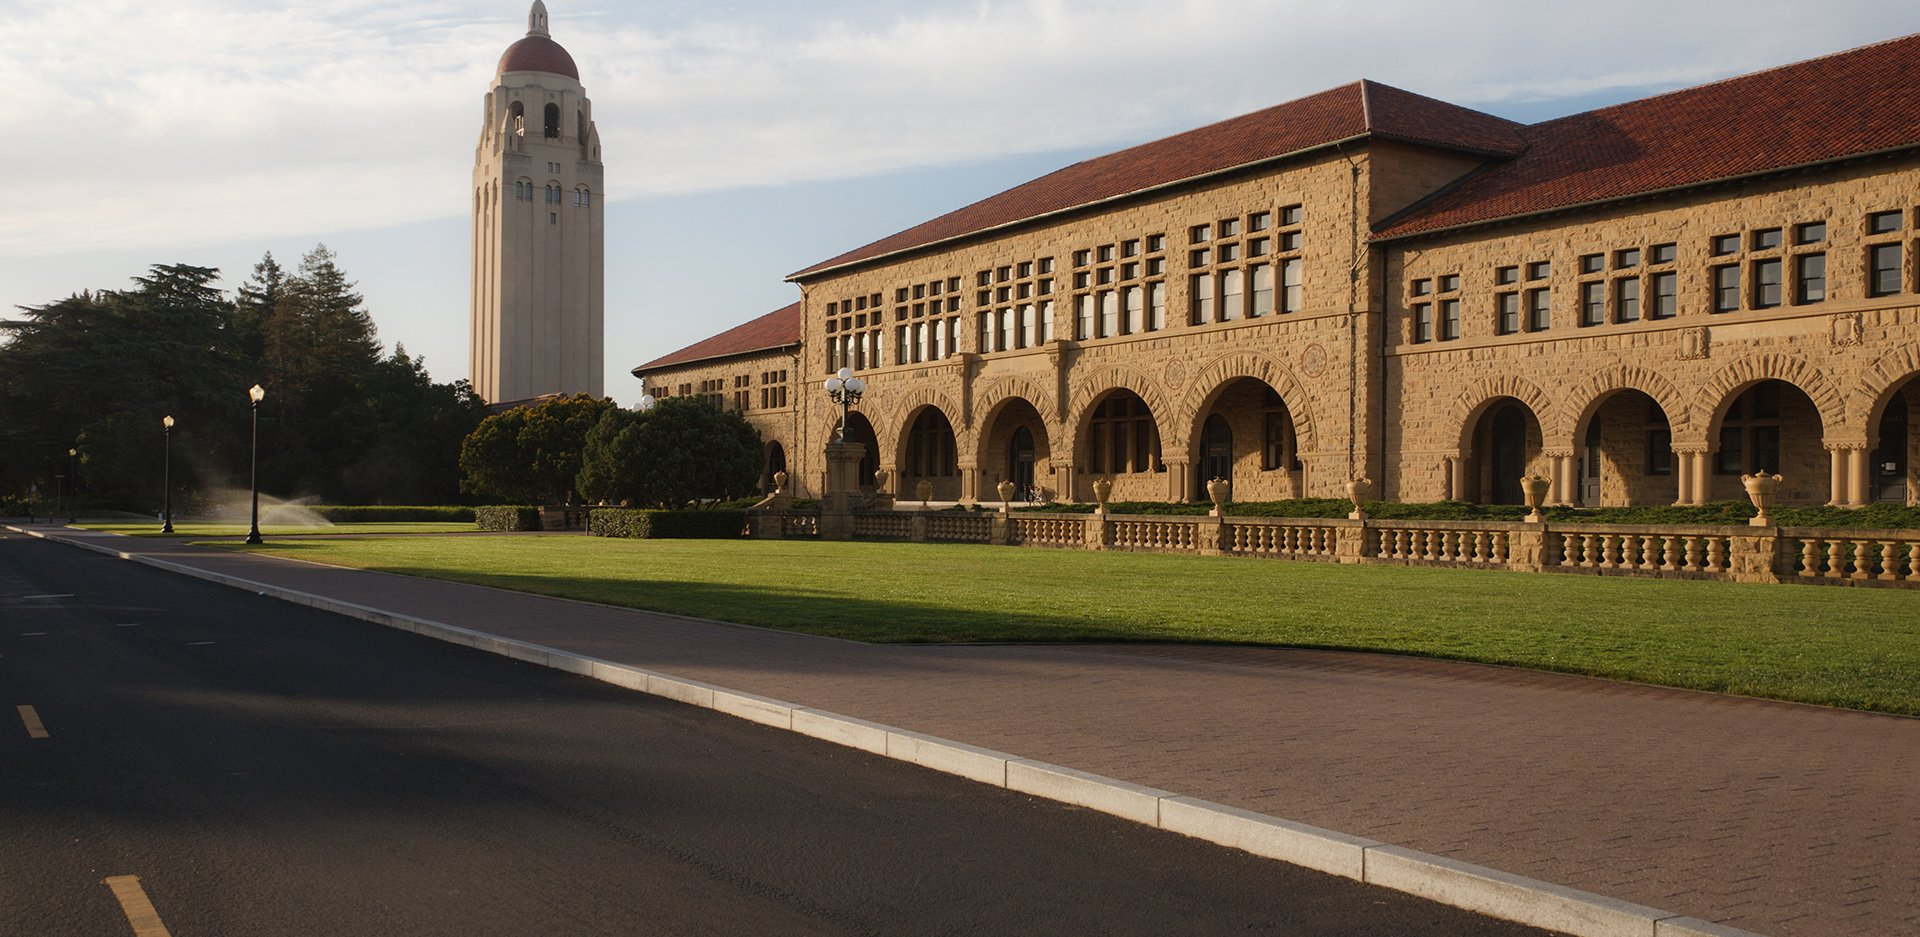 College admission essays online stanford